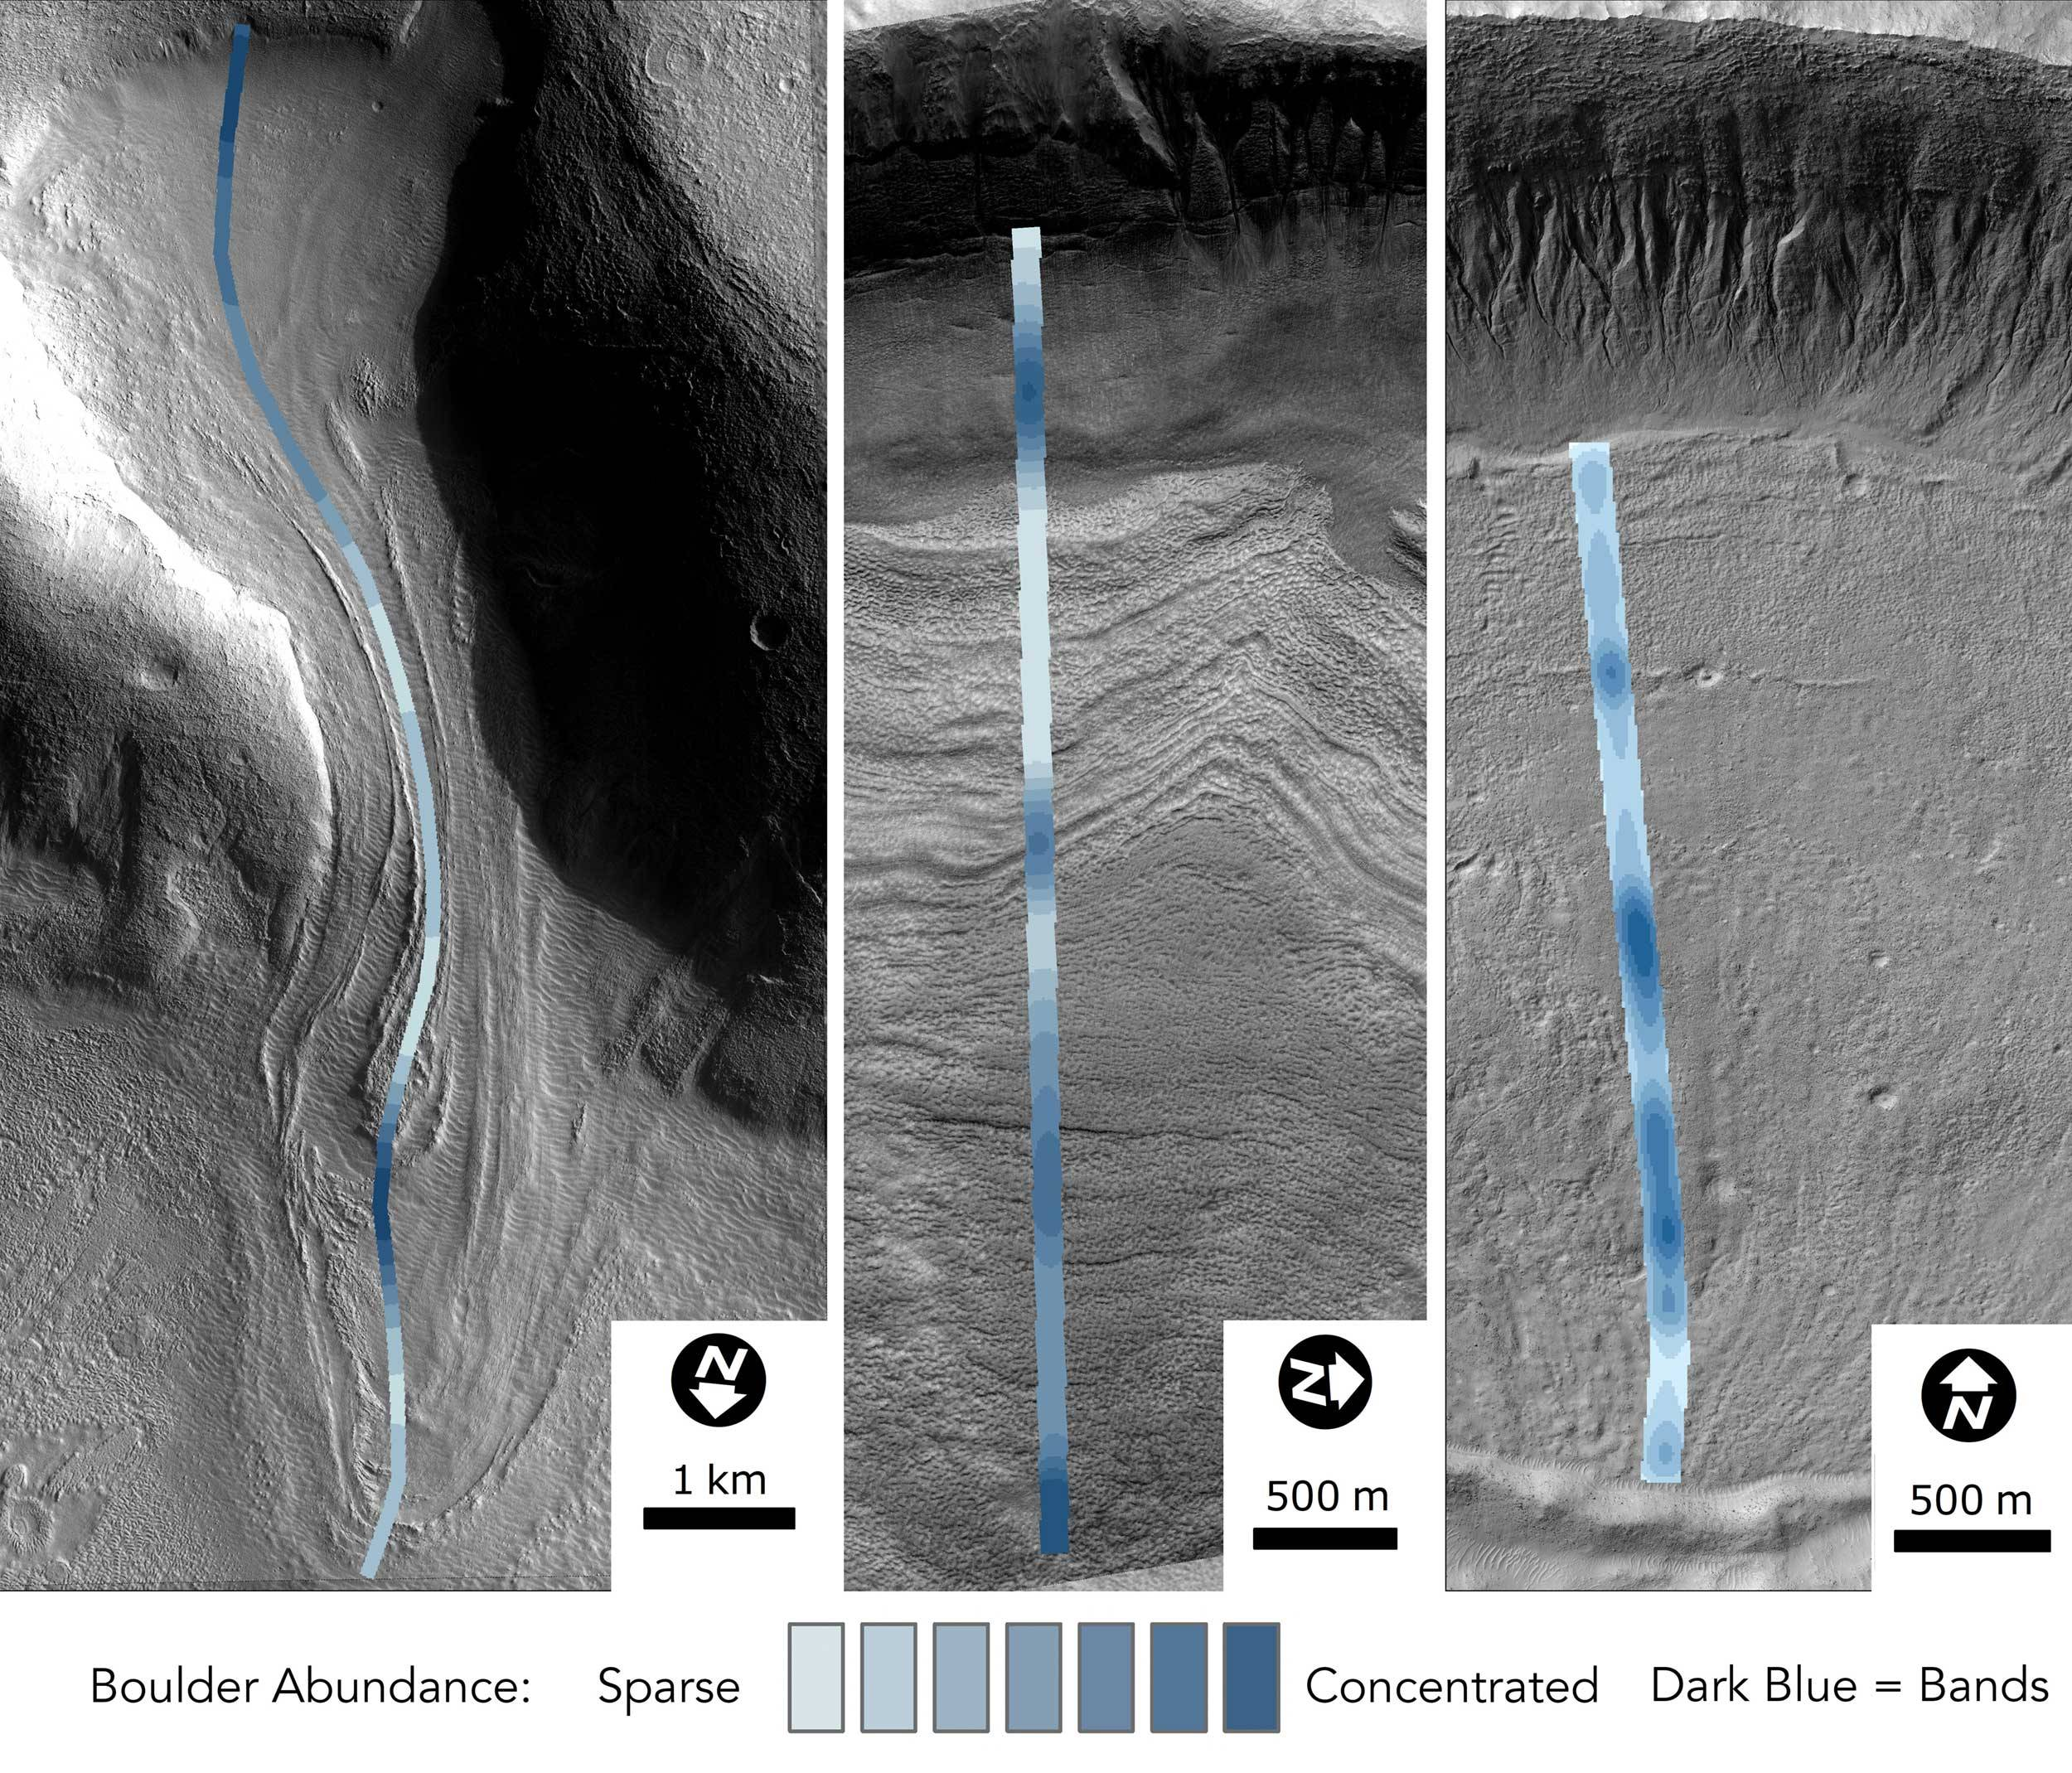 comparison of glacier debris on martian surface